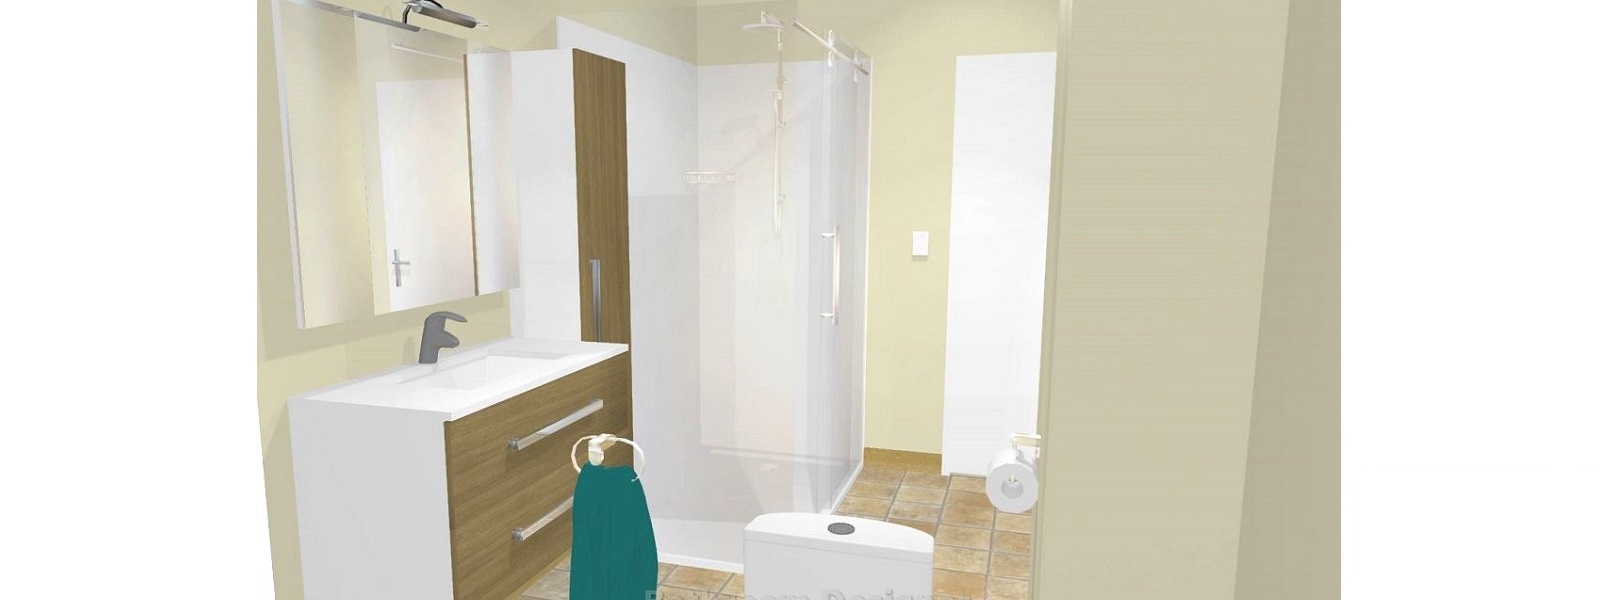 Bathroom designer we design your new bathroom for Small bathroom designs nz